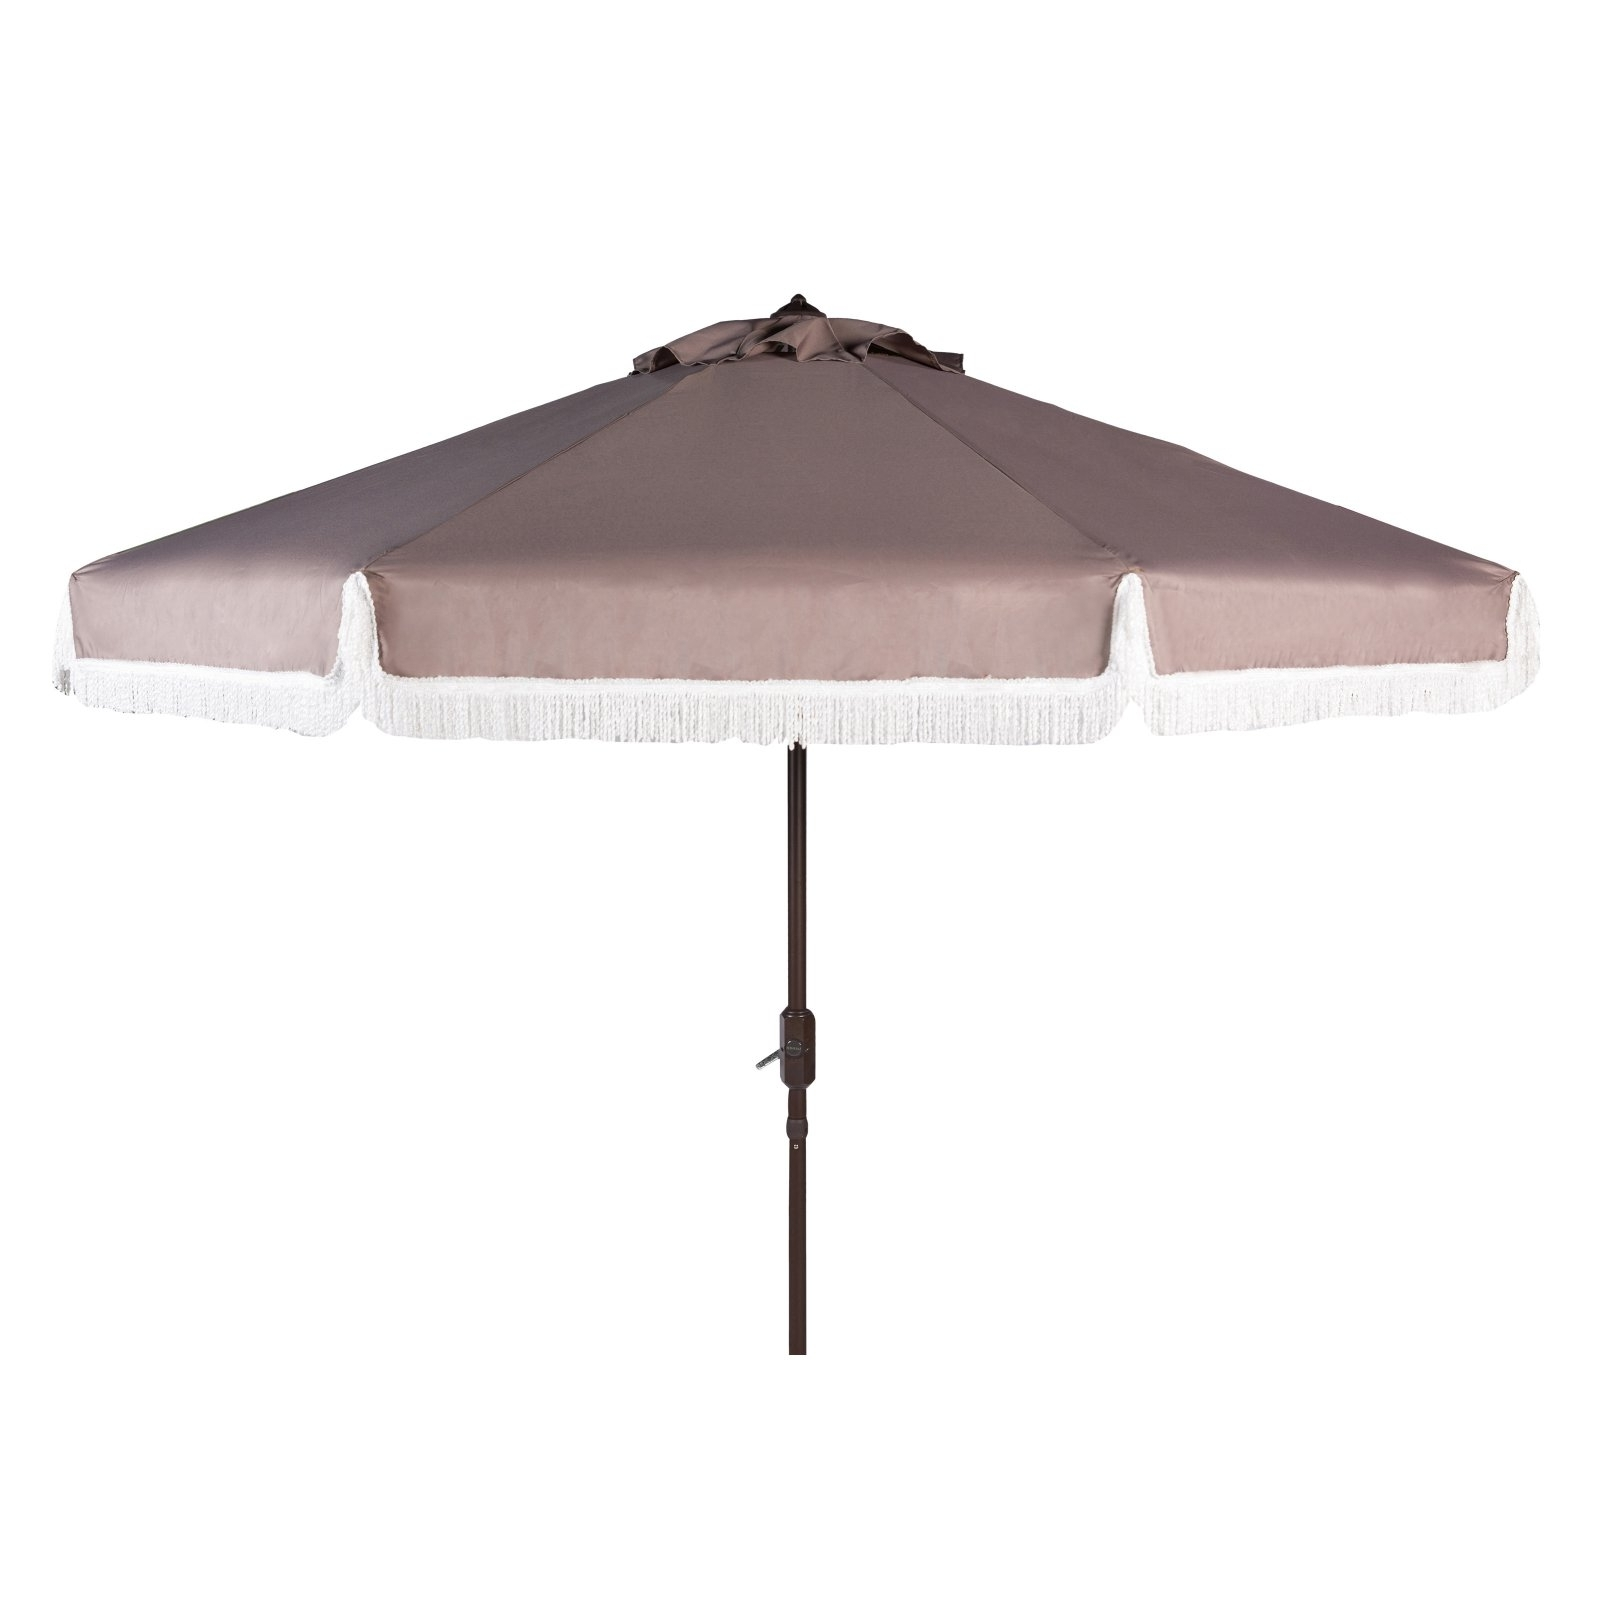 Safavieh Milan Fringe 9' Crank Outdoor Umbrella, Multiple Colors Intended For 2019 Patio Umbrellas With Fringe (View 17 of 20)